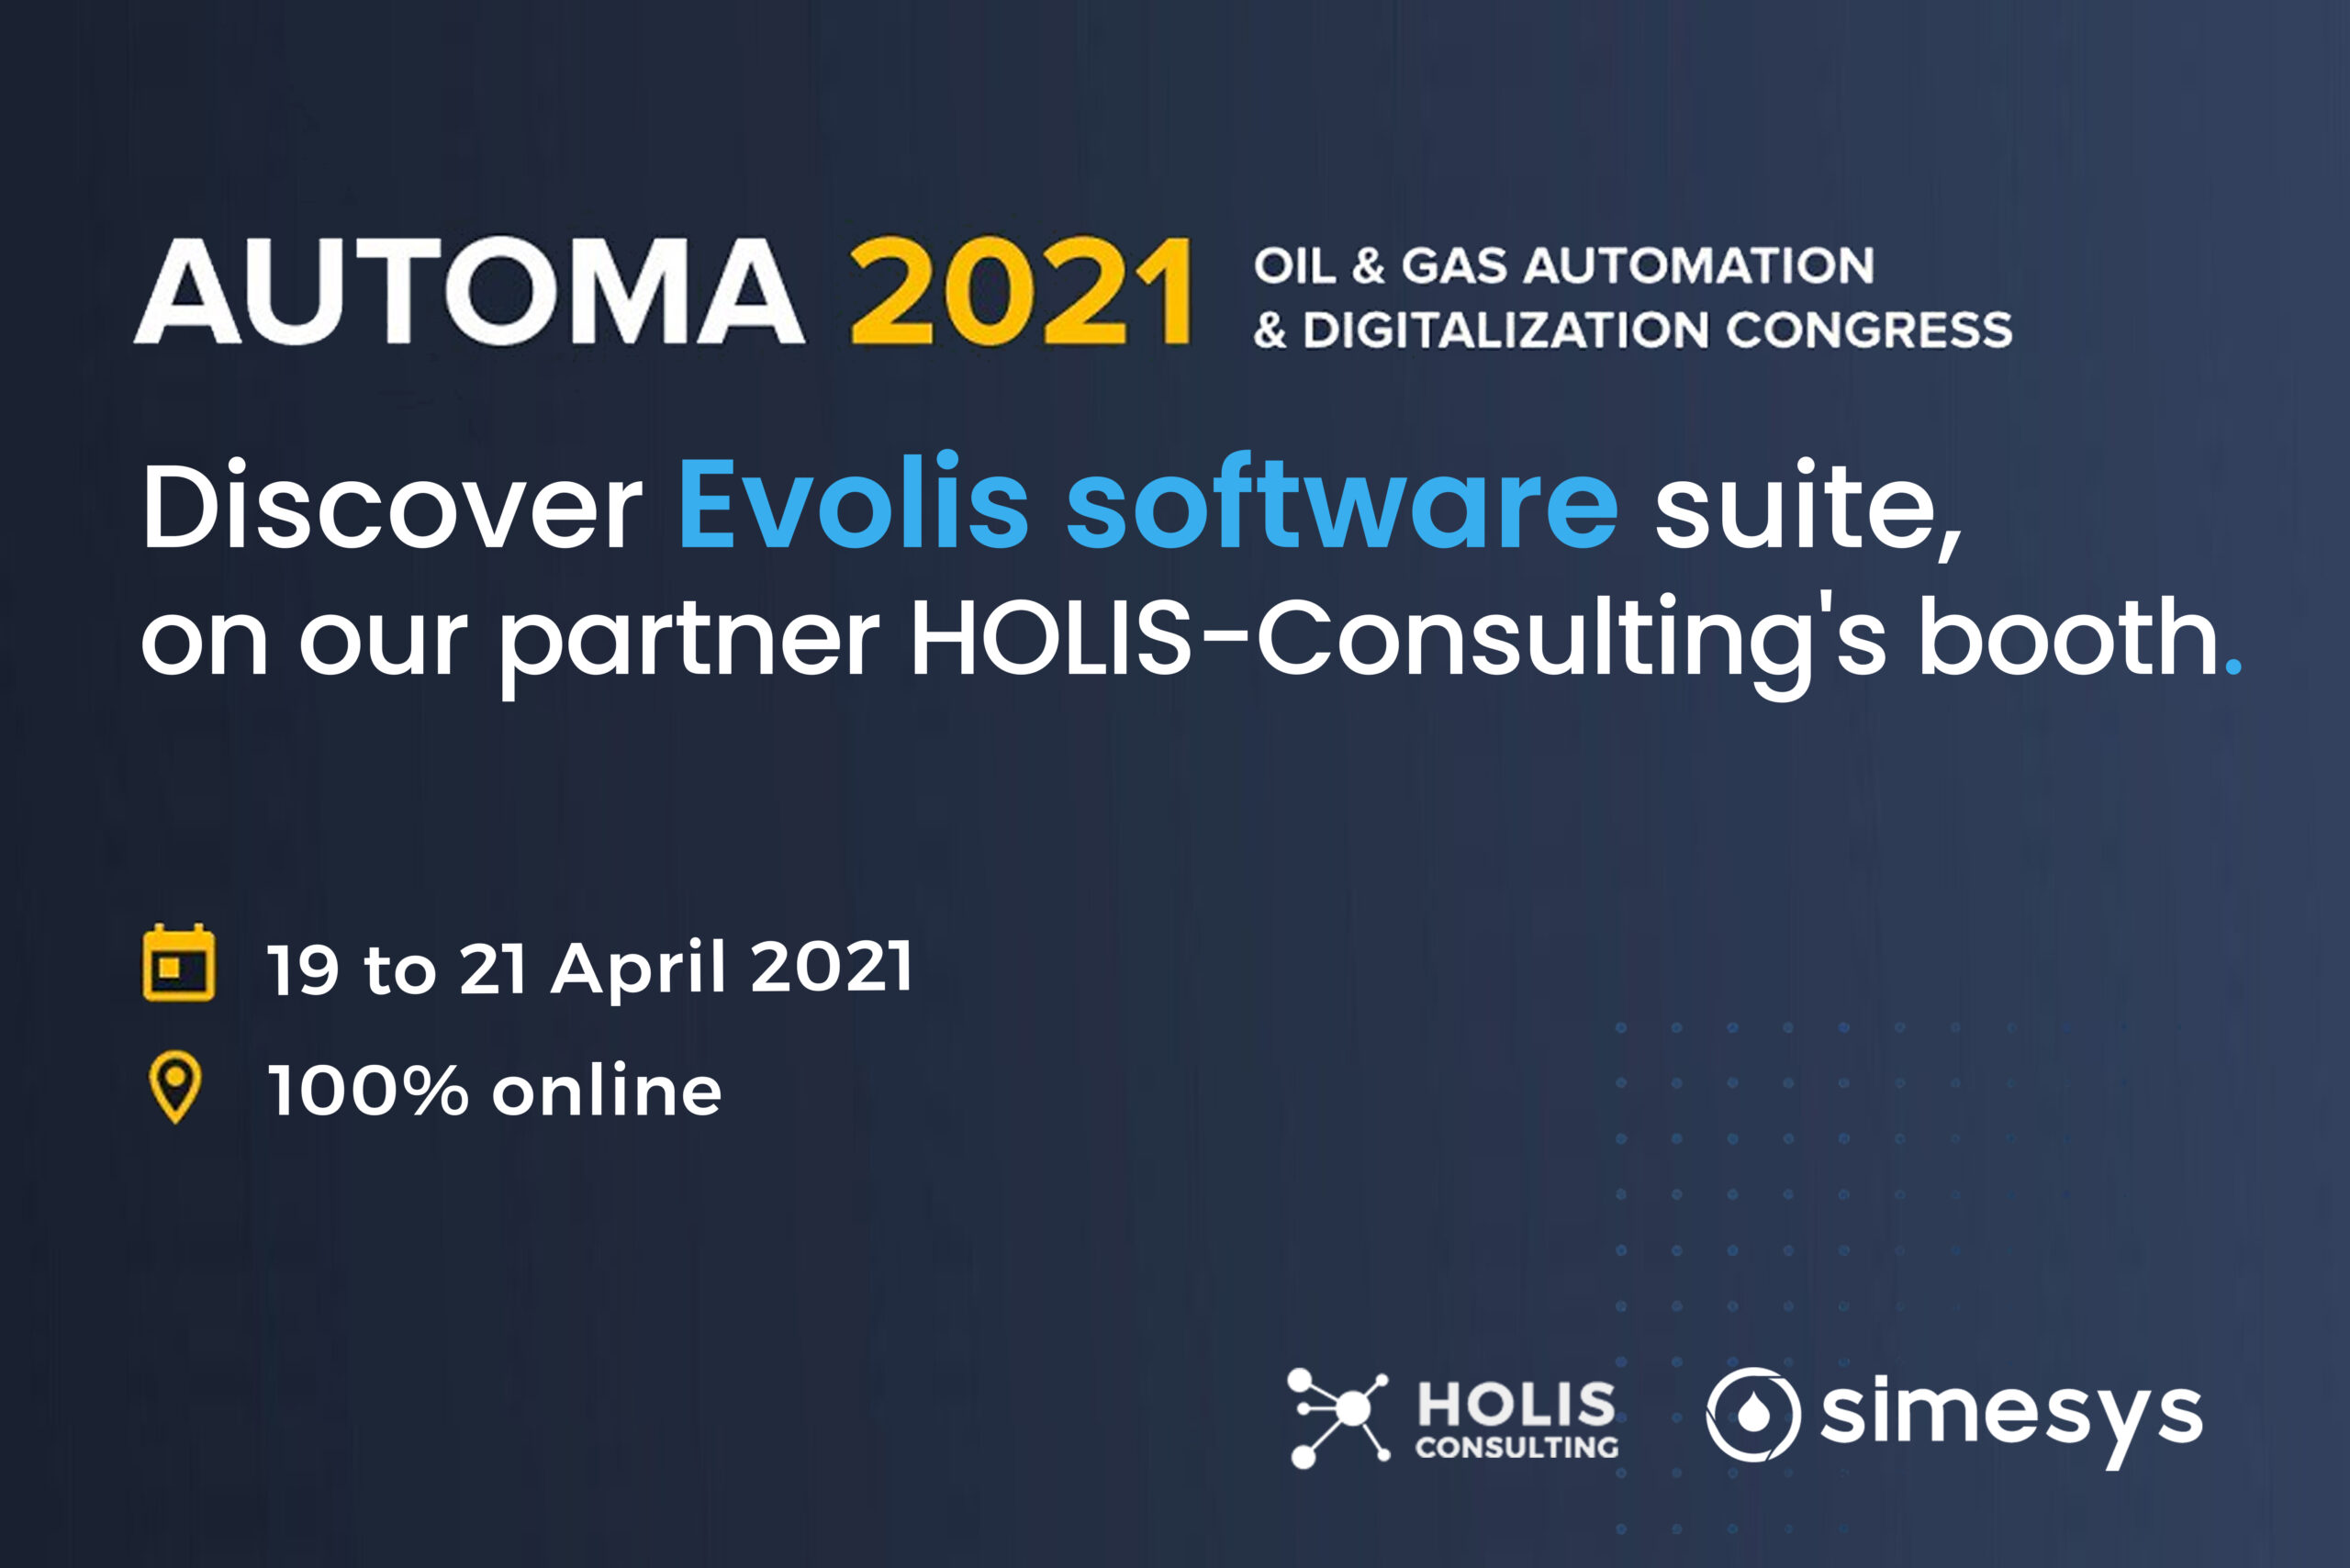 Evolis at Automa 2021 Discover Simesys solution / Holis-Consulting booth